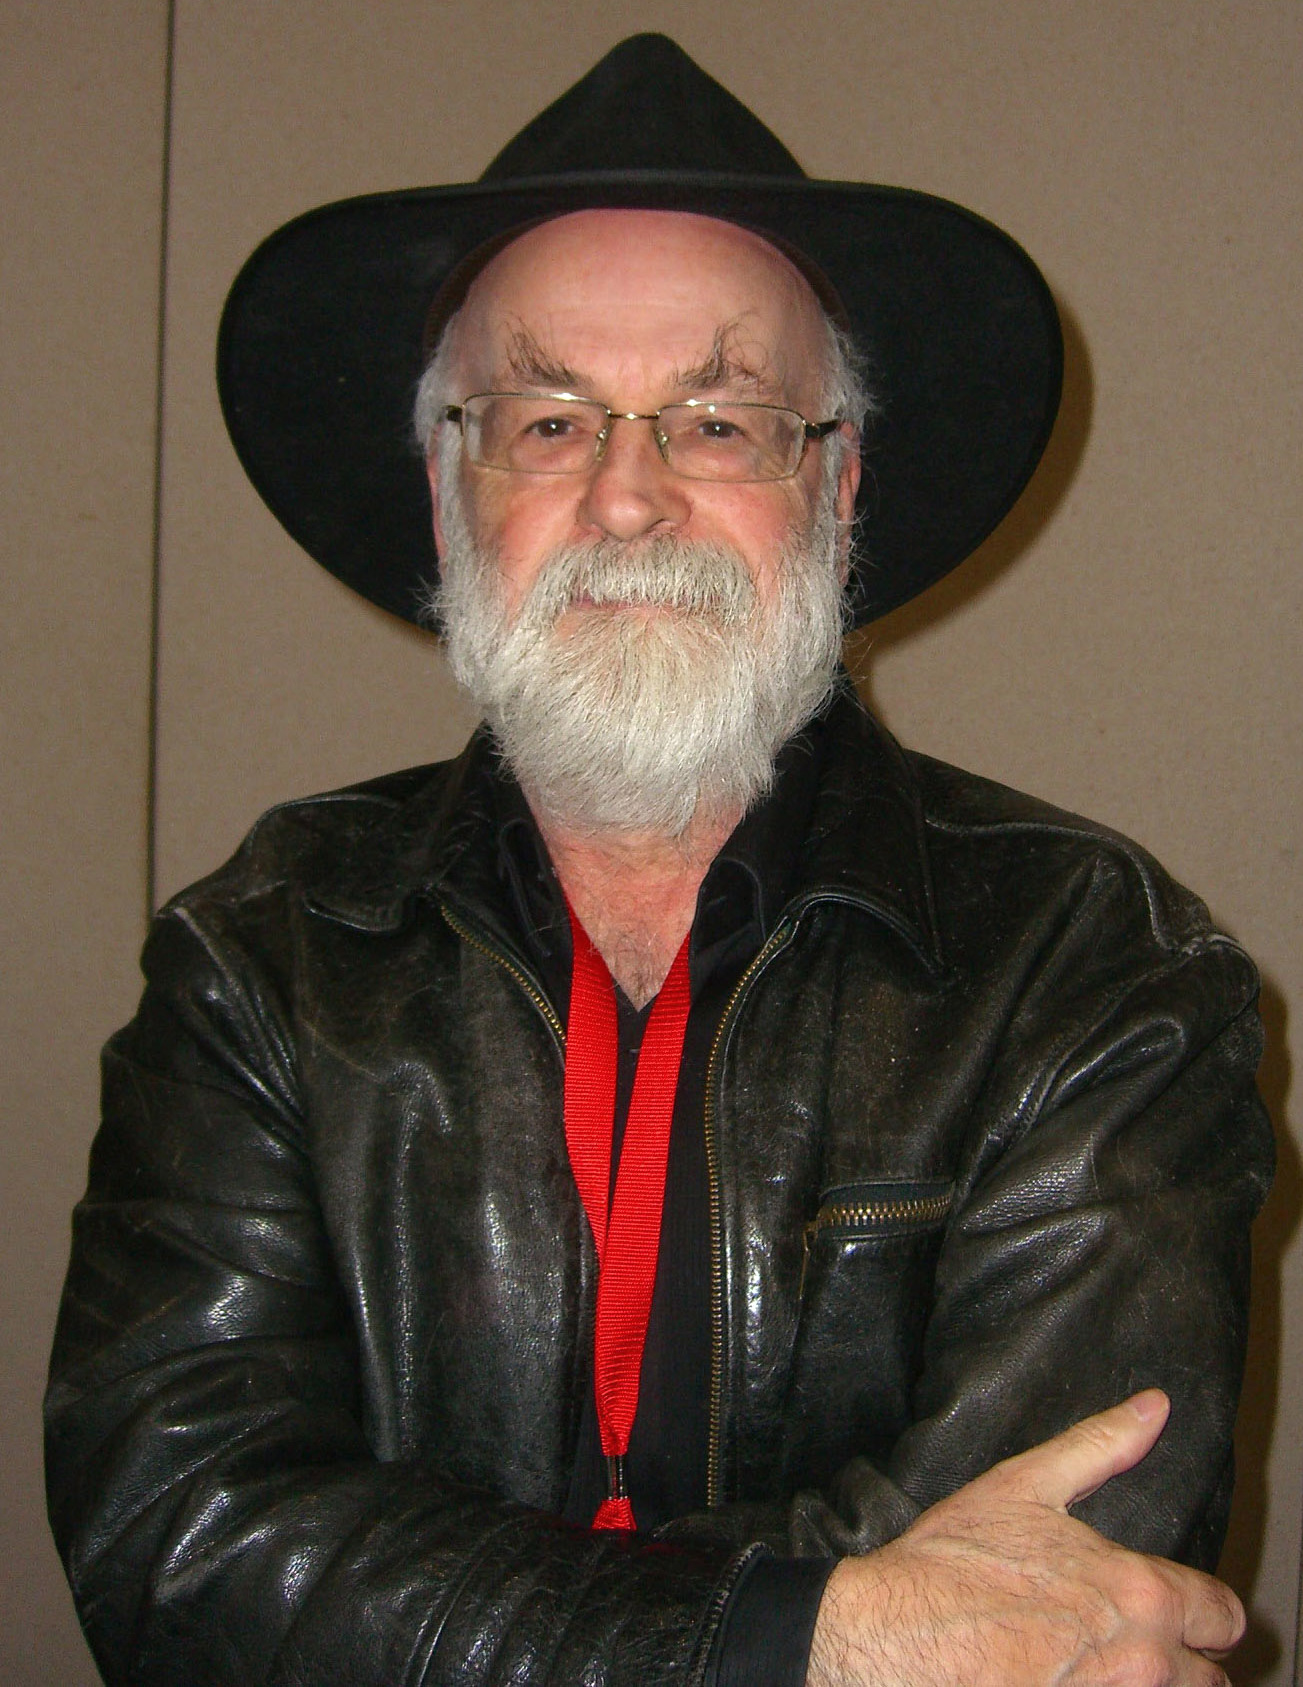 Pratchett at the 2012 [[New York Comic Con]]